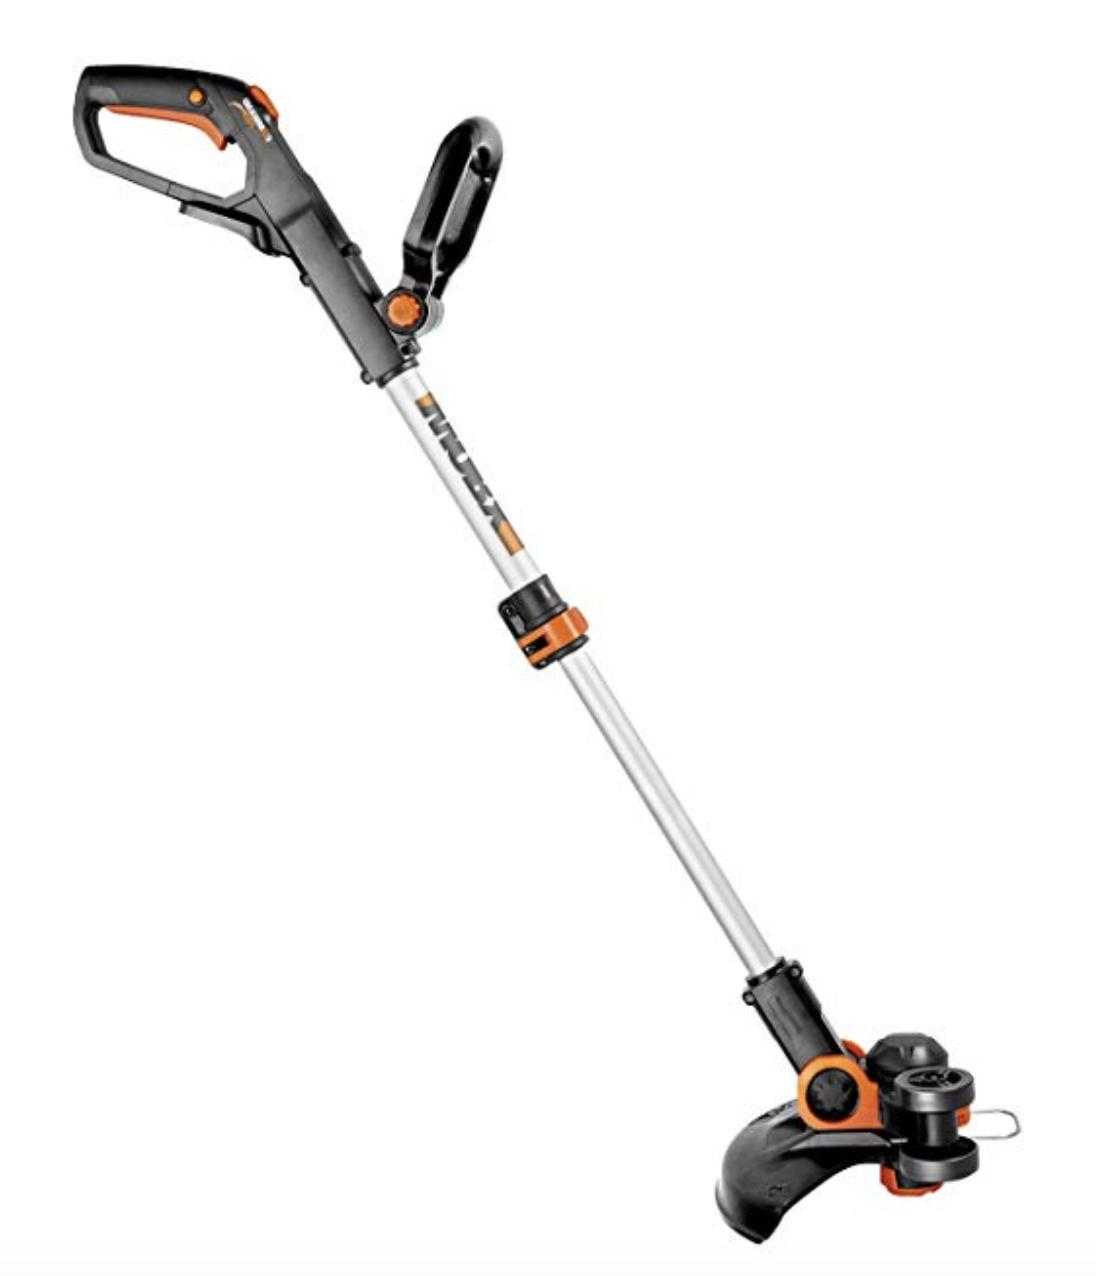 20V Worx Weed Eater Cordless Grass Trimmer Lawn Yard Edger T